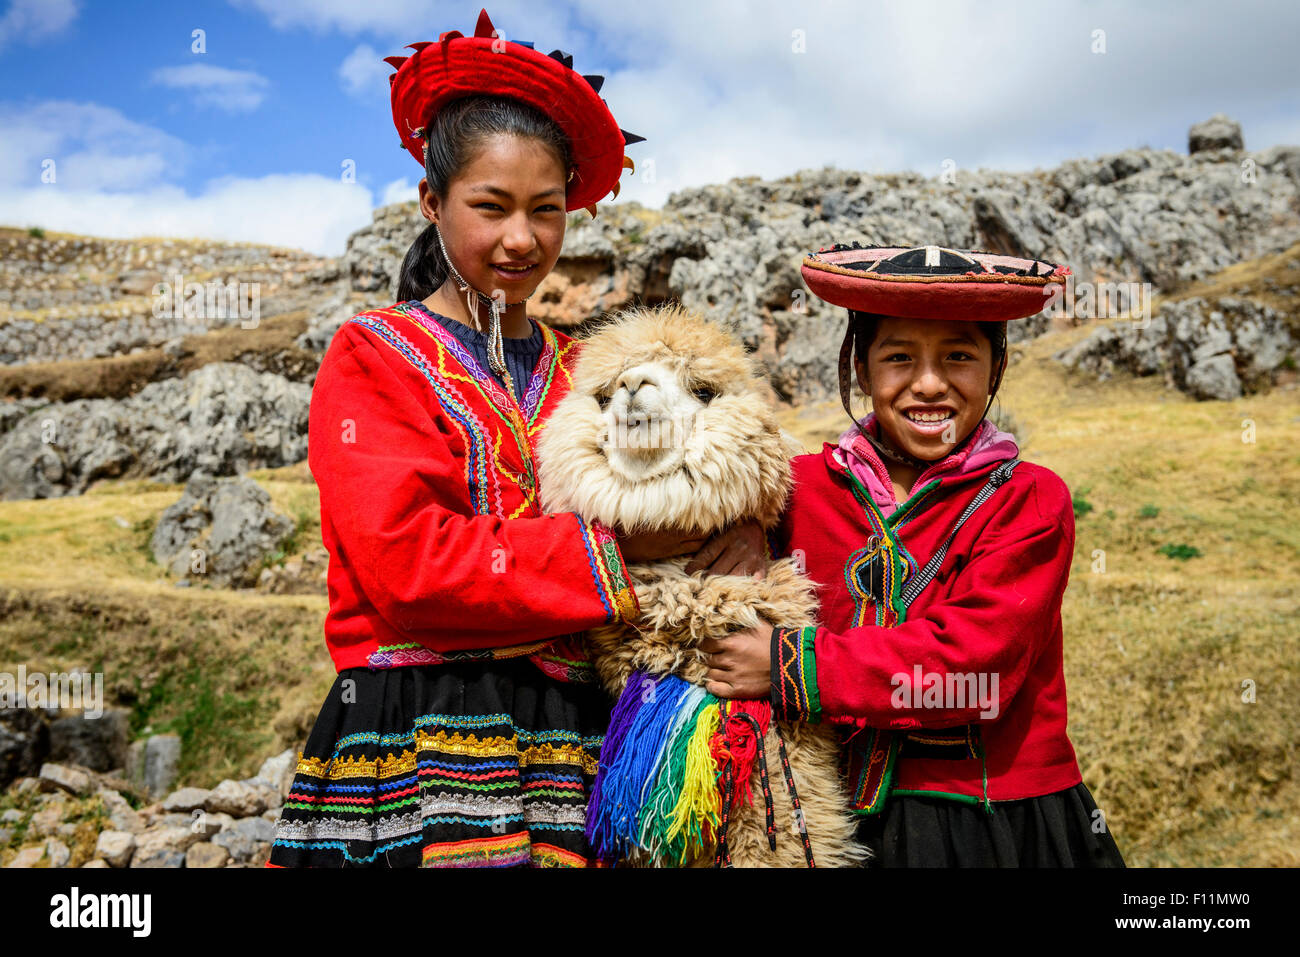 Hispanic sisters smiling with llama in rural landscape Photo Stock